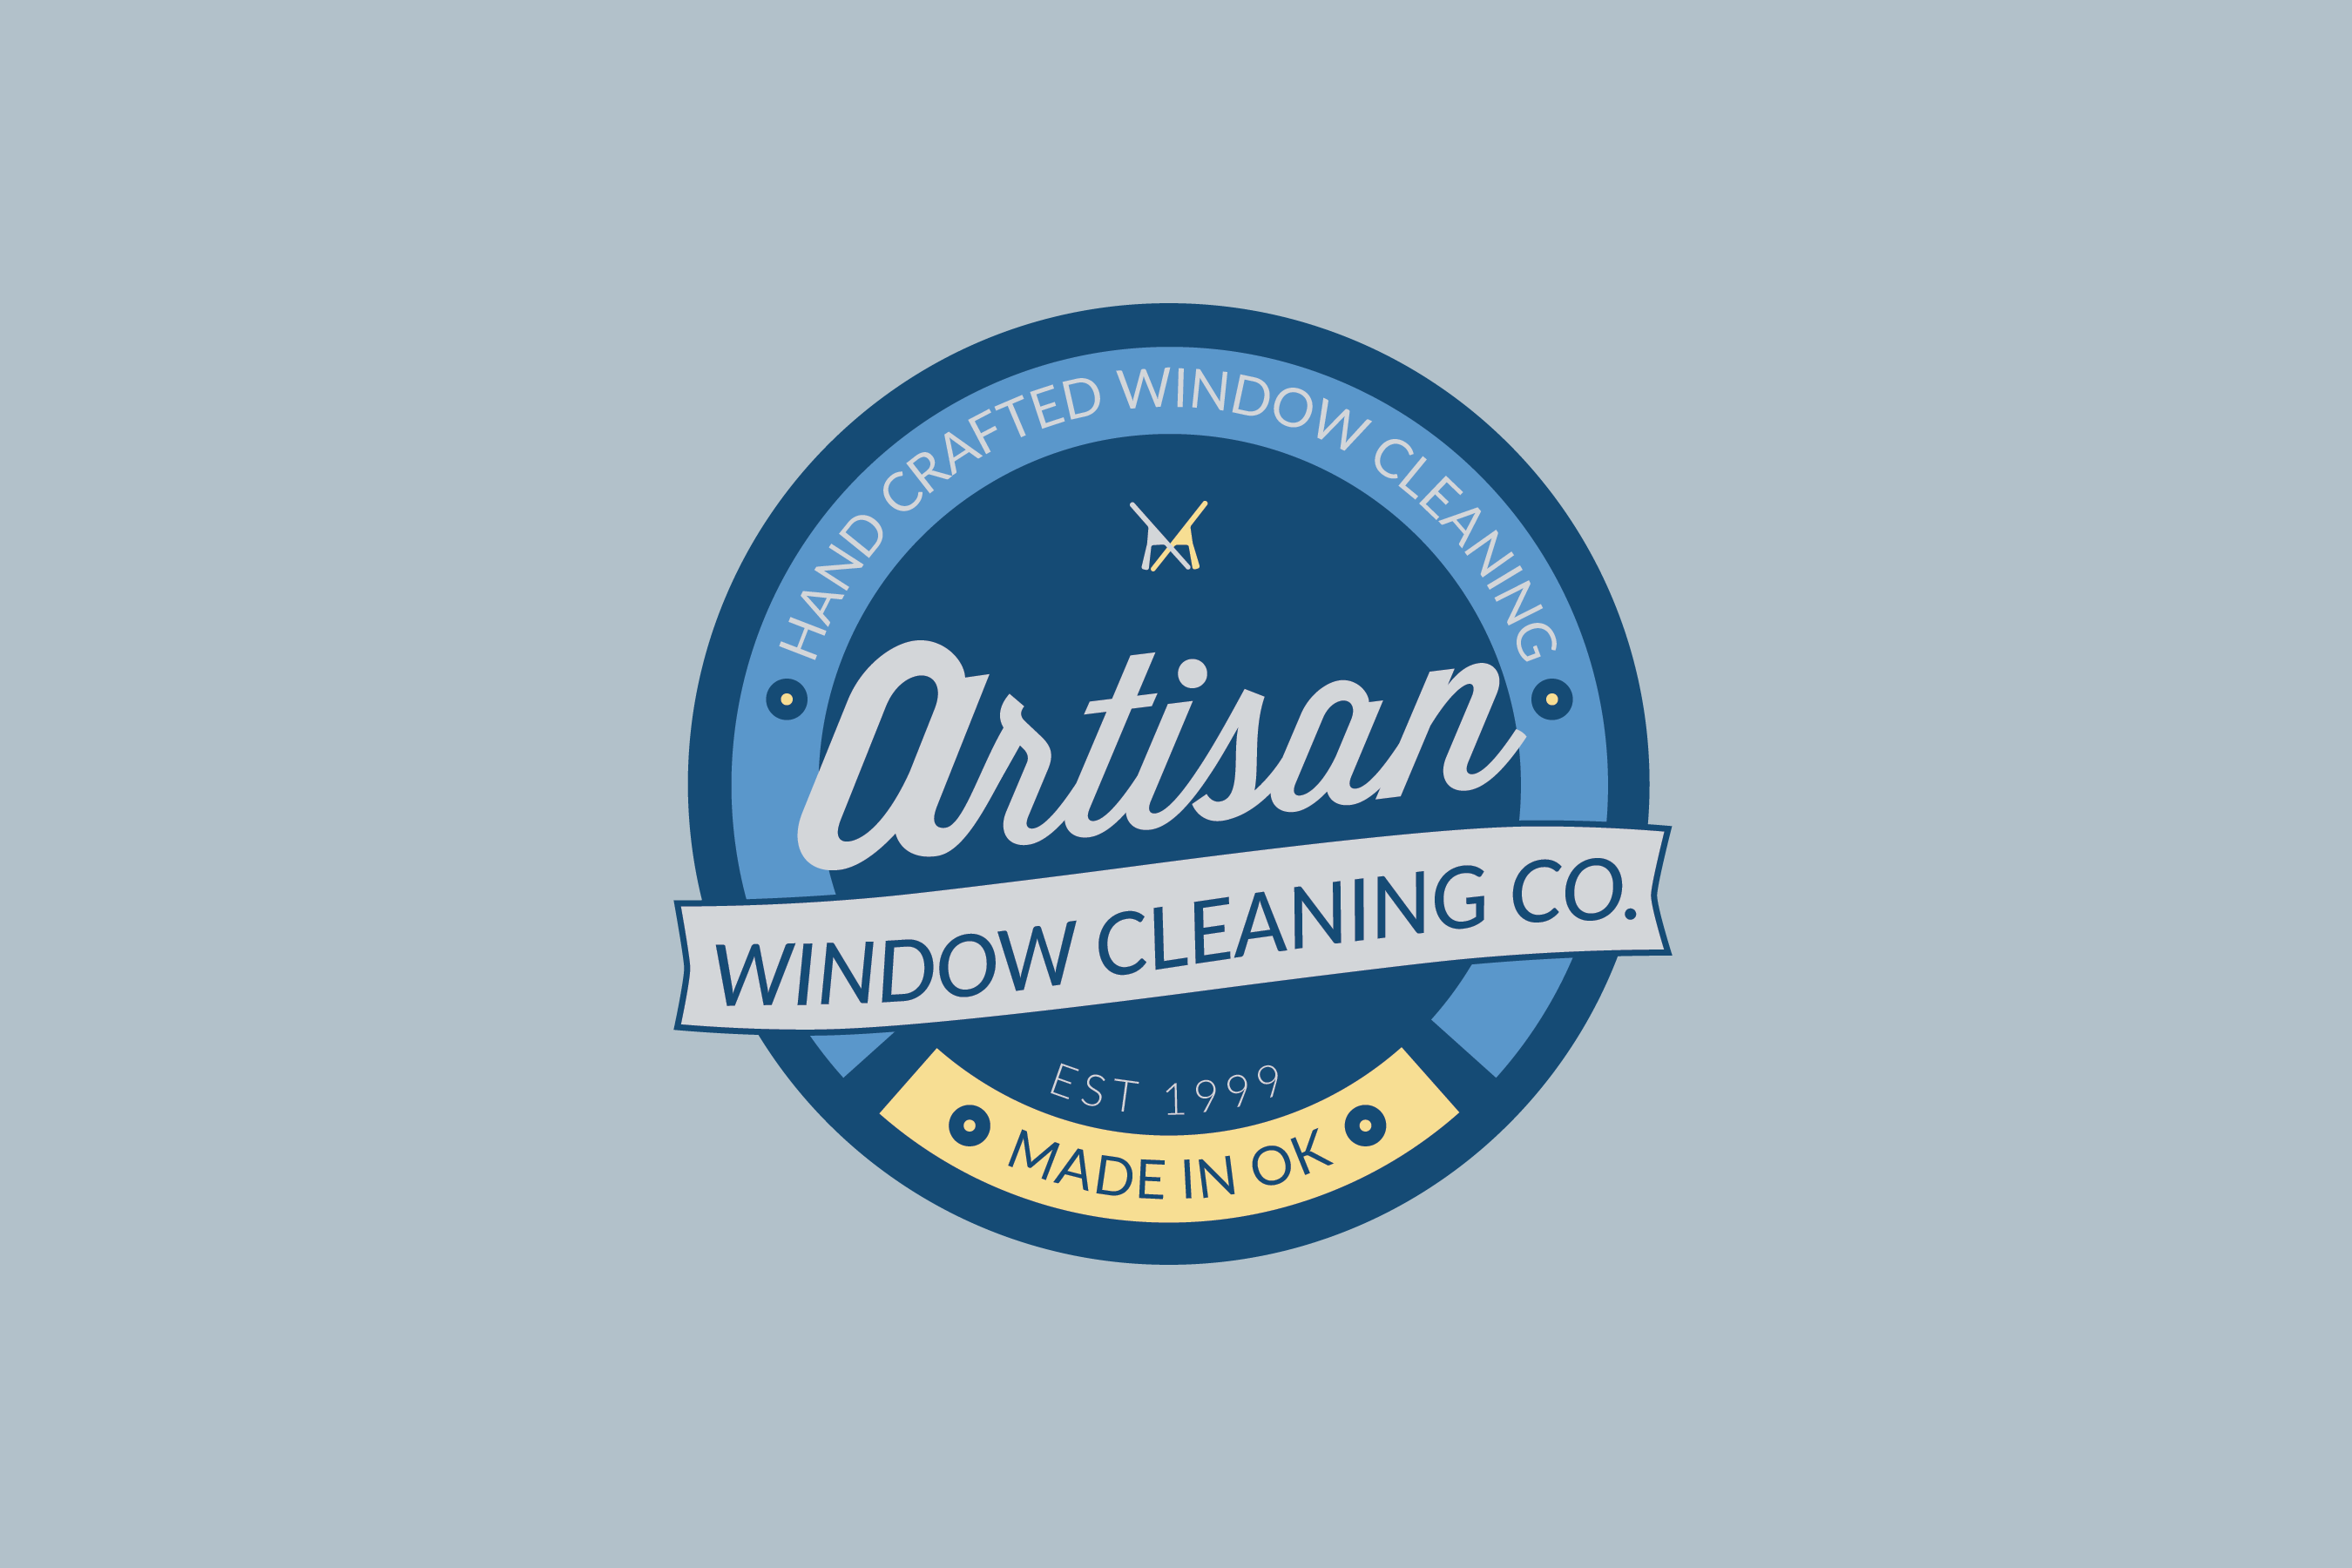 window cleaning company website design oklahoma city